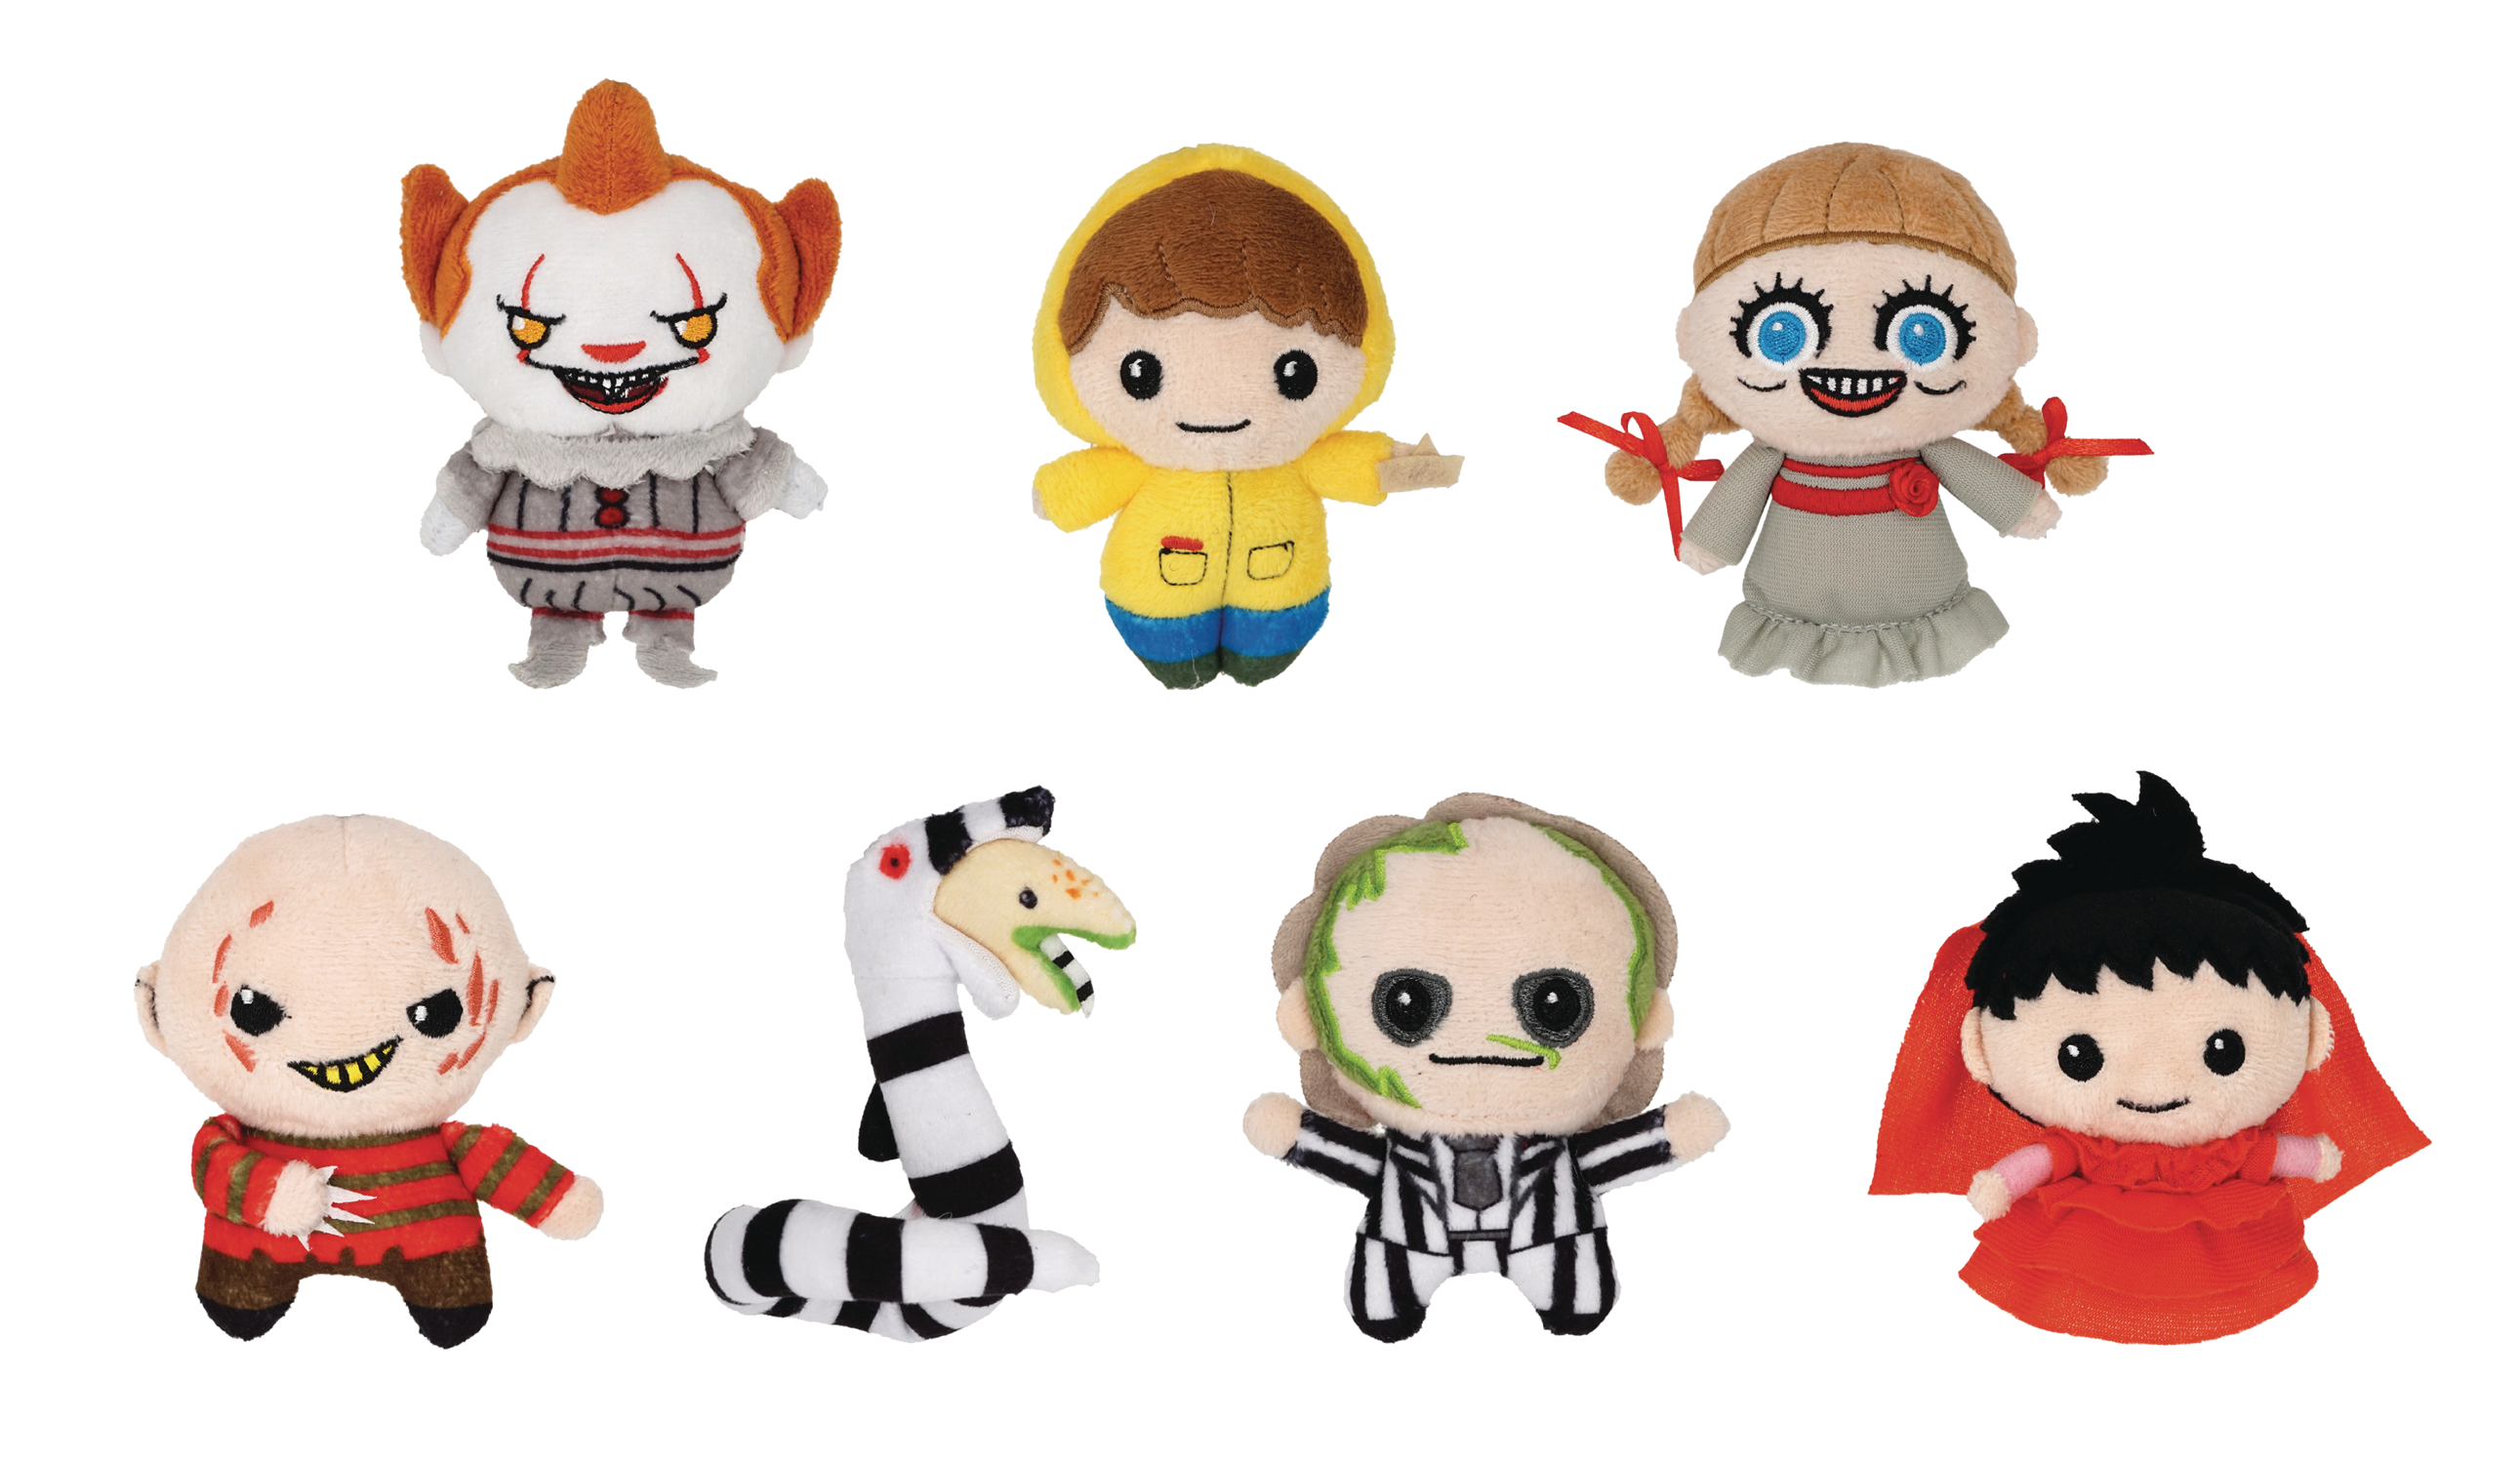 HORROR PLUSH KEYRING 24 PC BMB DIS